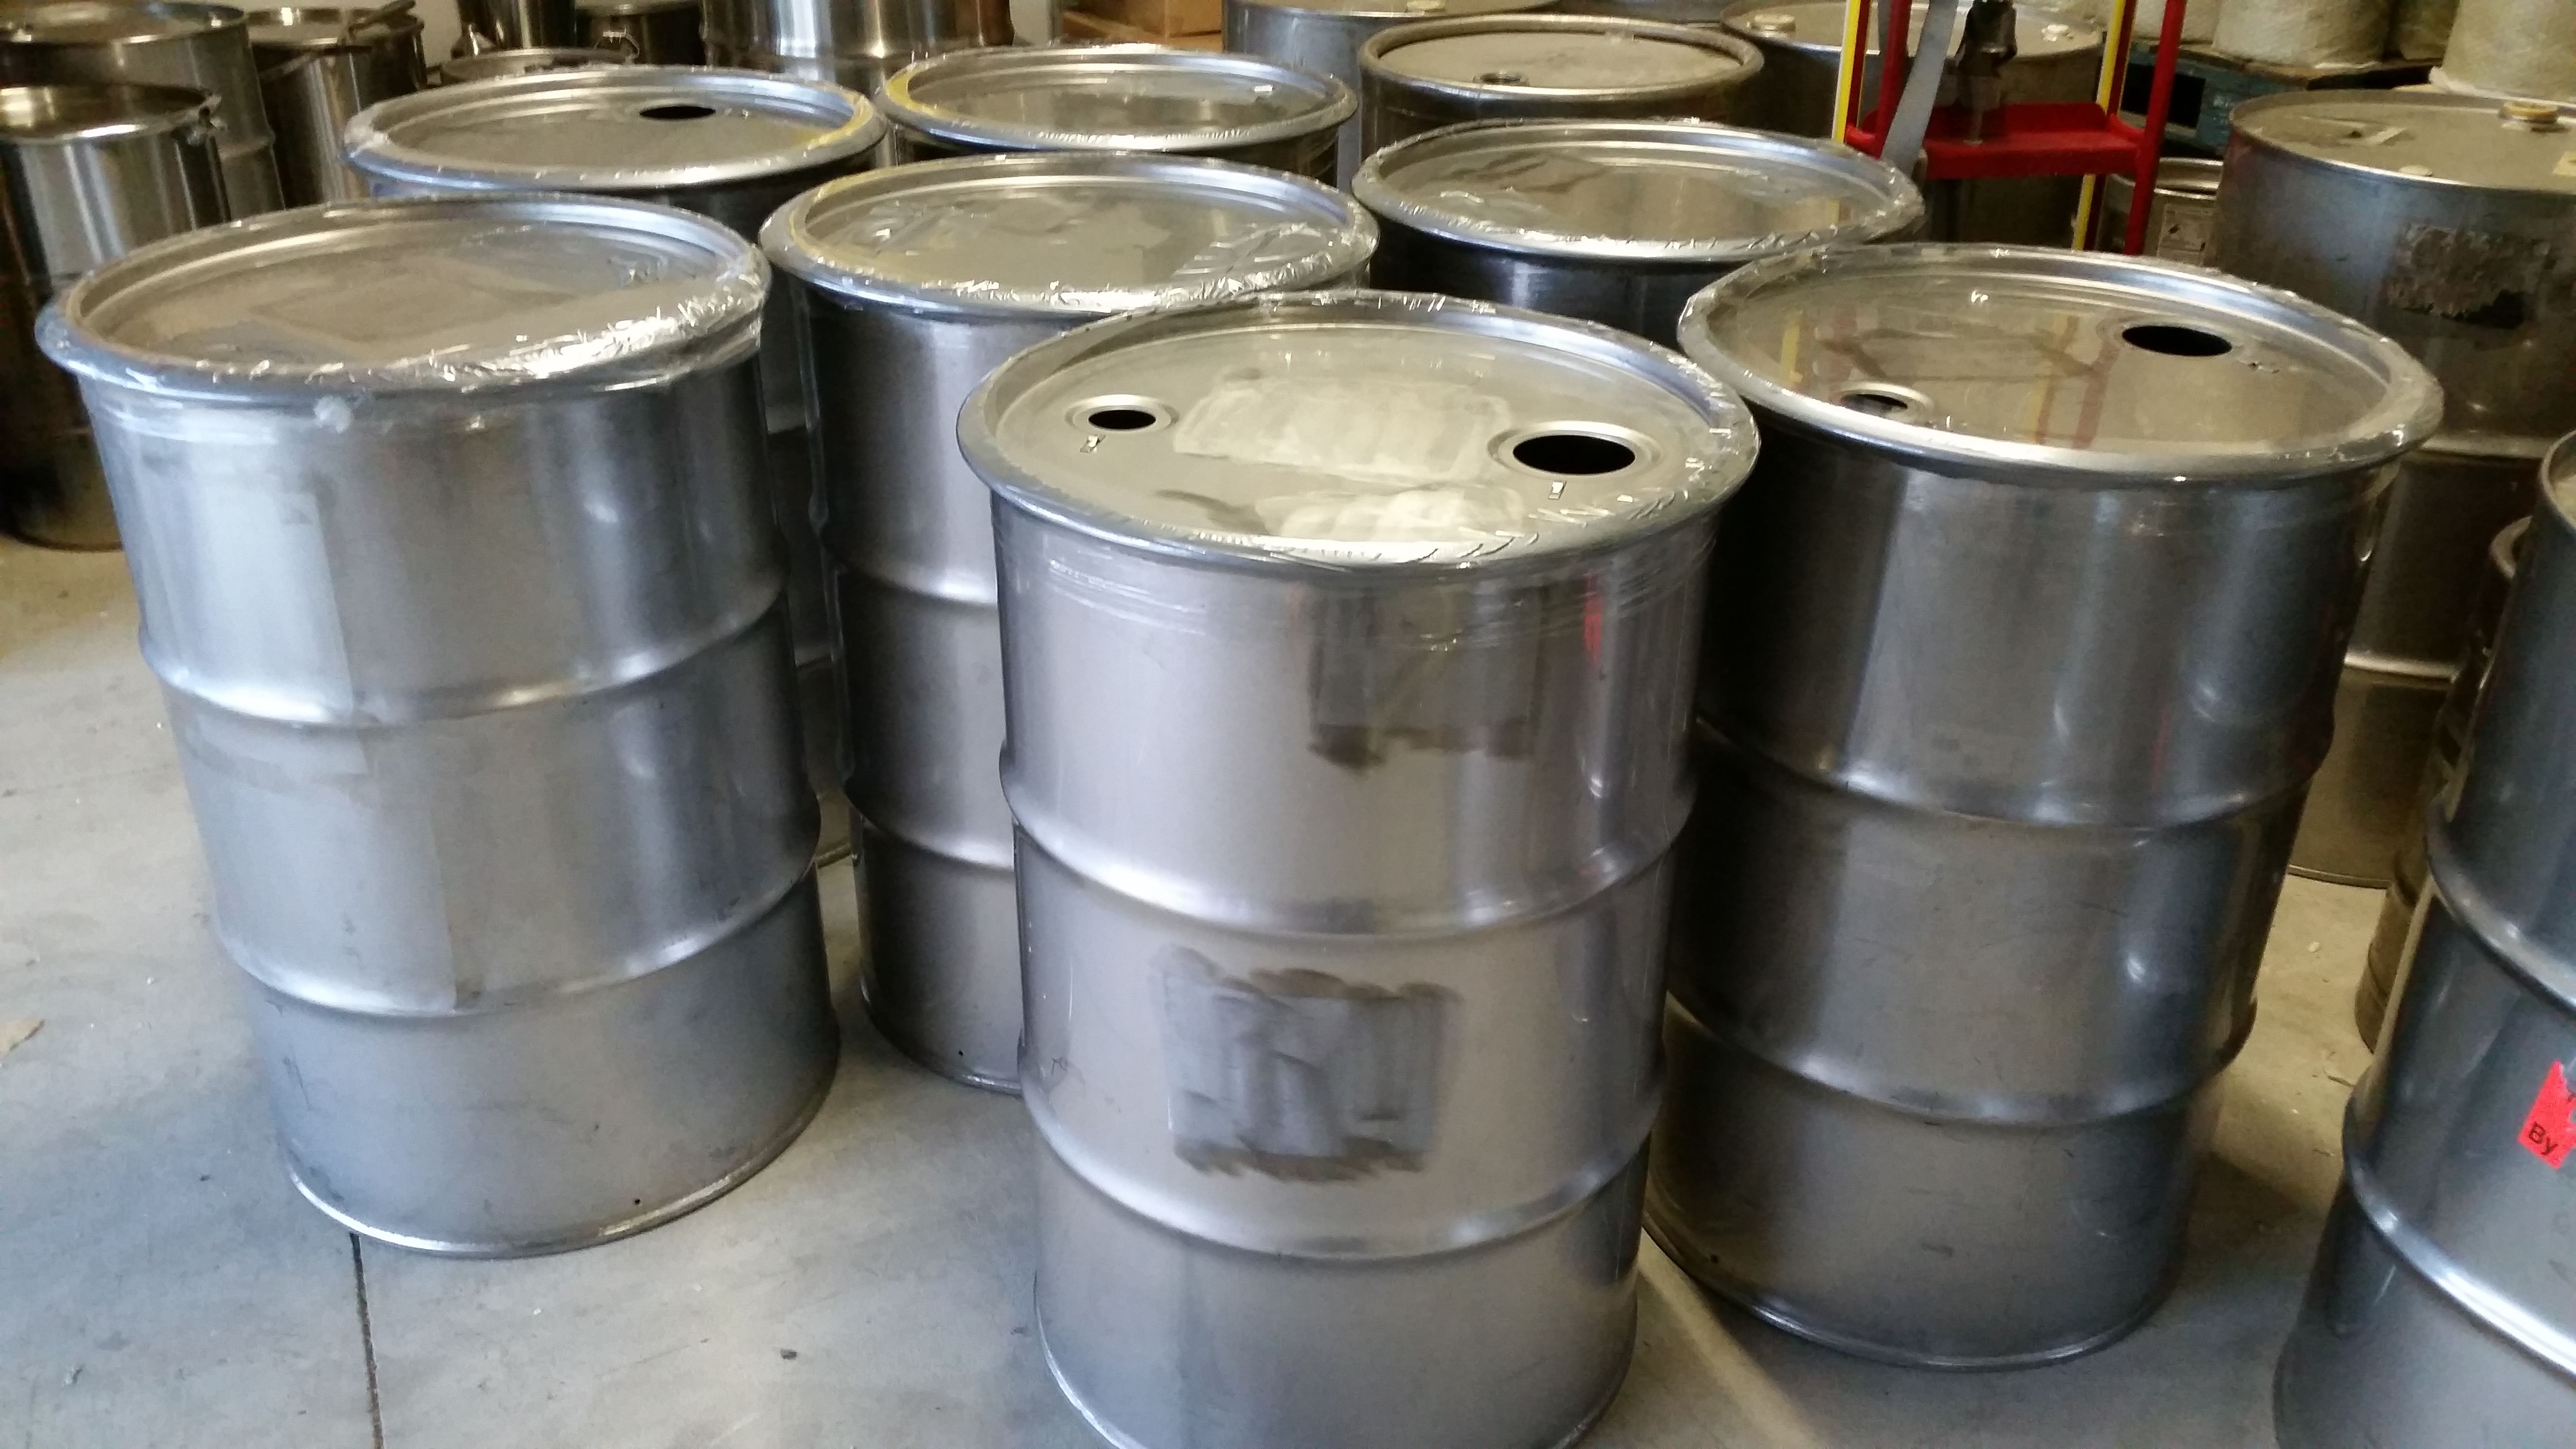 Used Stainless Steel Open Top Barrels For Sale From Www Usedstainlesssteelbarrels Com Stainless Steel Accessories Steel Barrel Steel Accessories